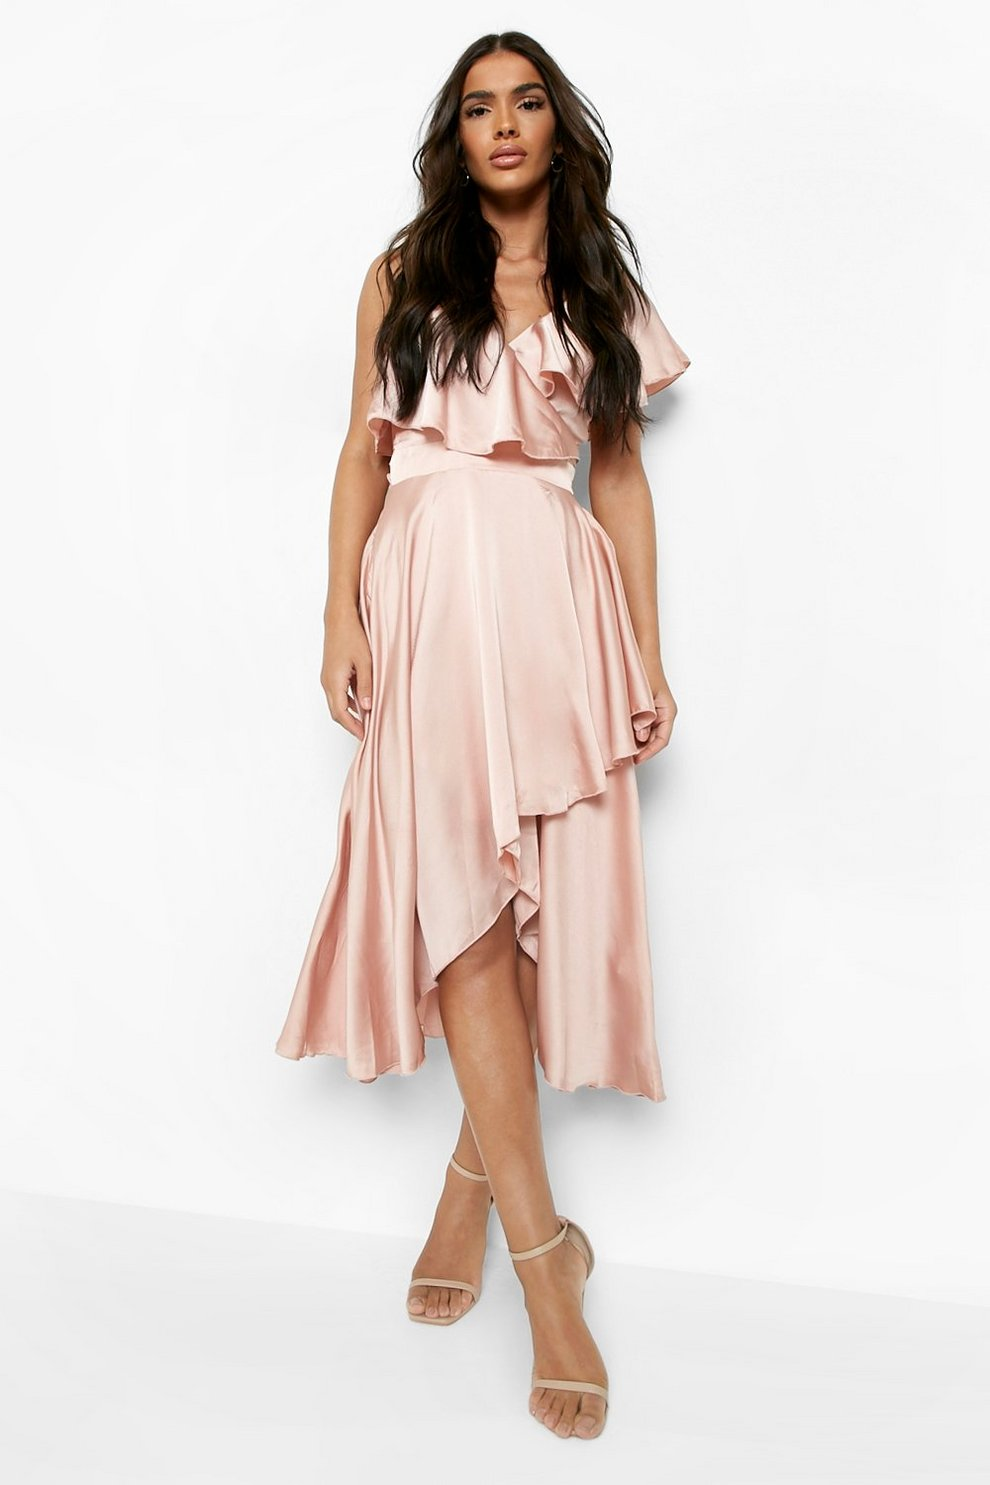 Boohoo Sabina Satin Wrap Detail Skater Dress Outlet Store Locations ...